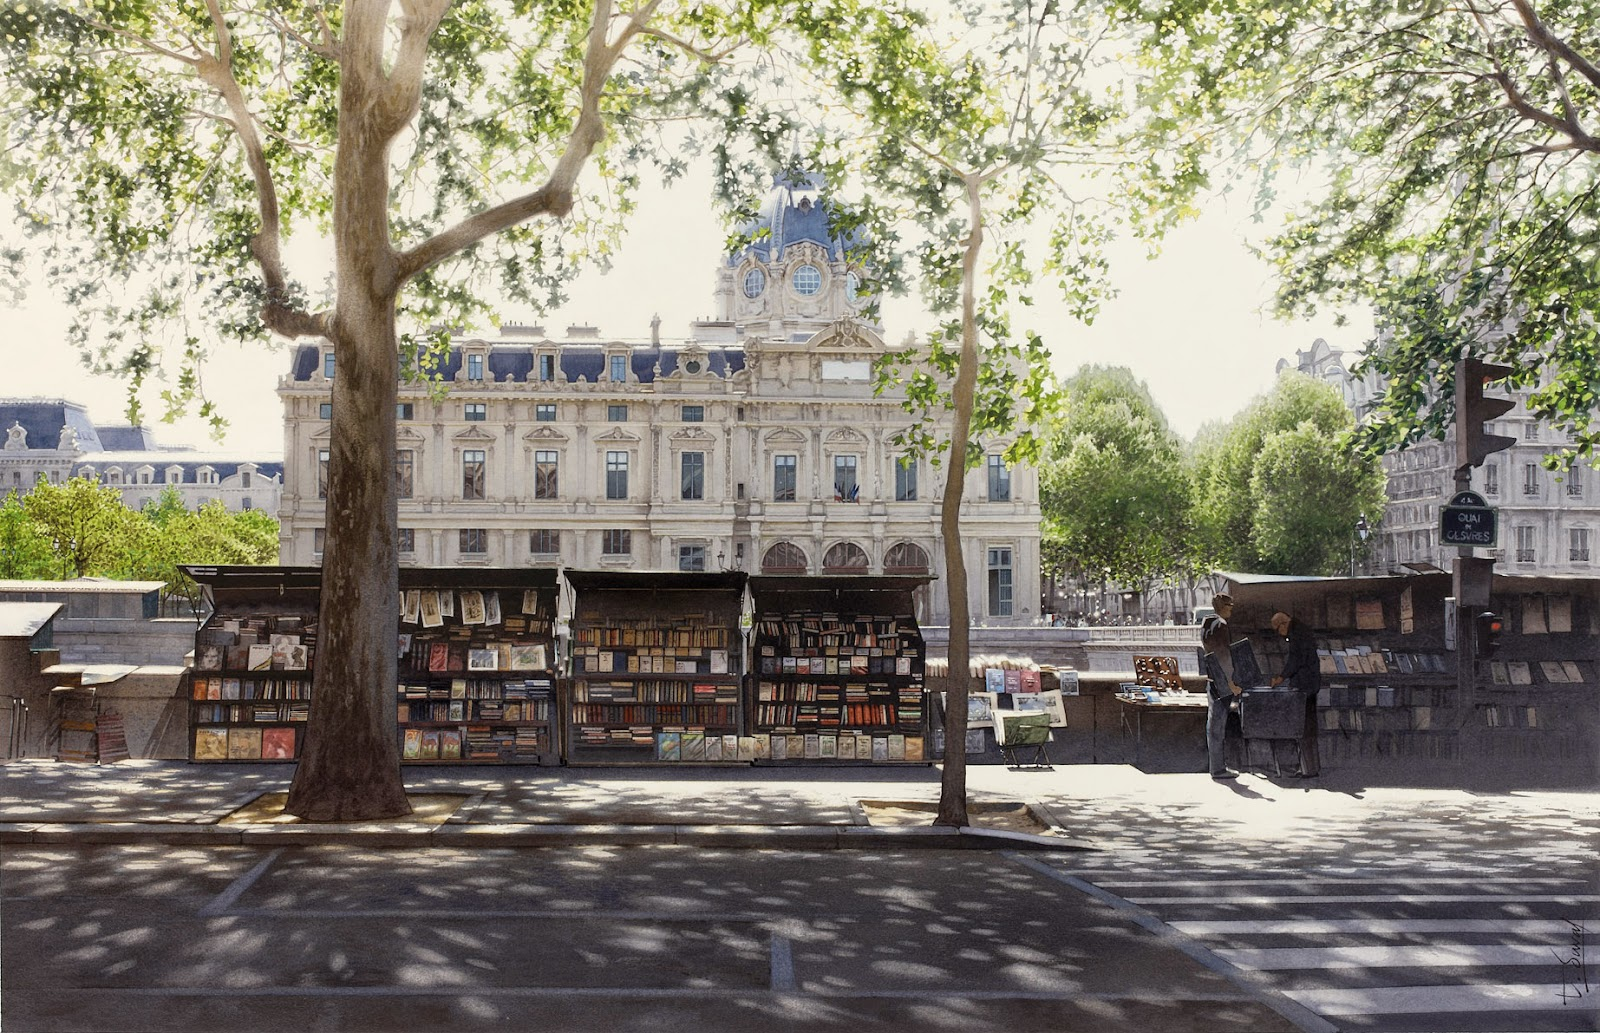 30-Thierry-Duval-Snippets-of Real-Life-in Watercolor-Paintings-www-designstack-co